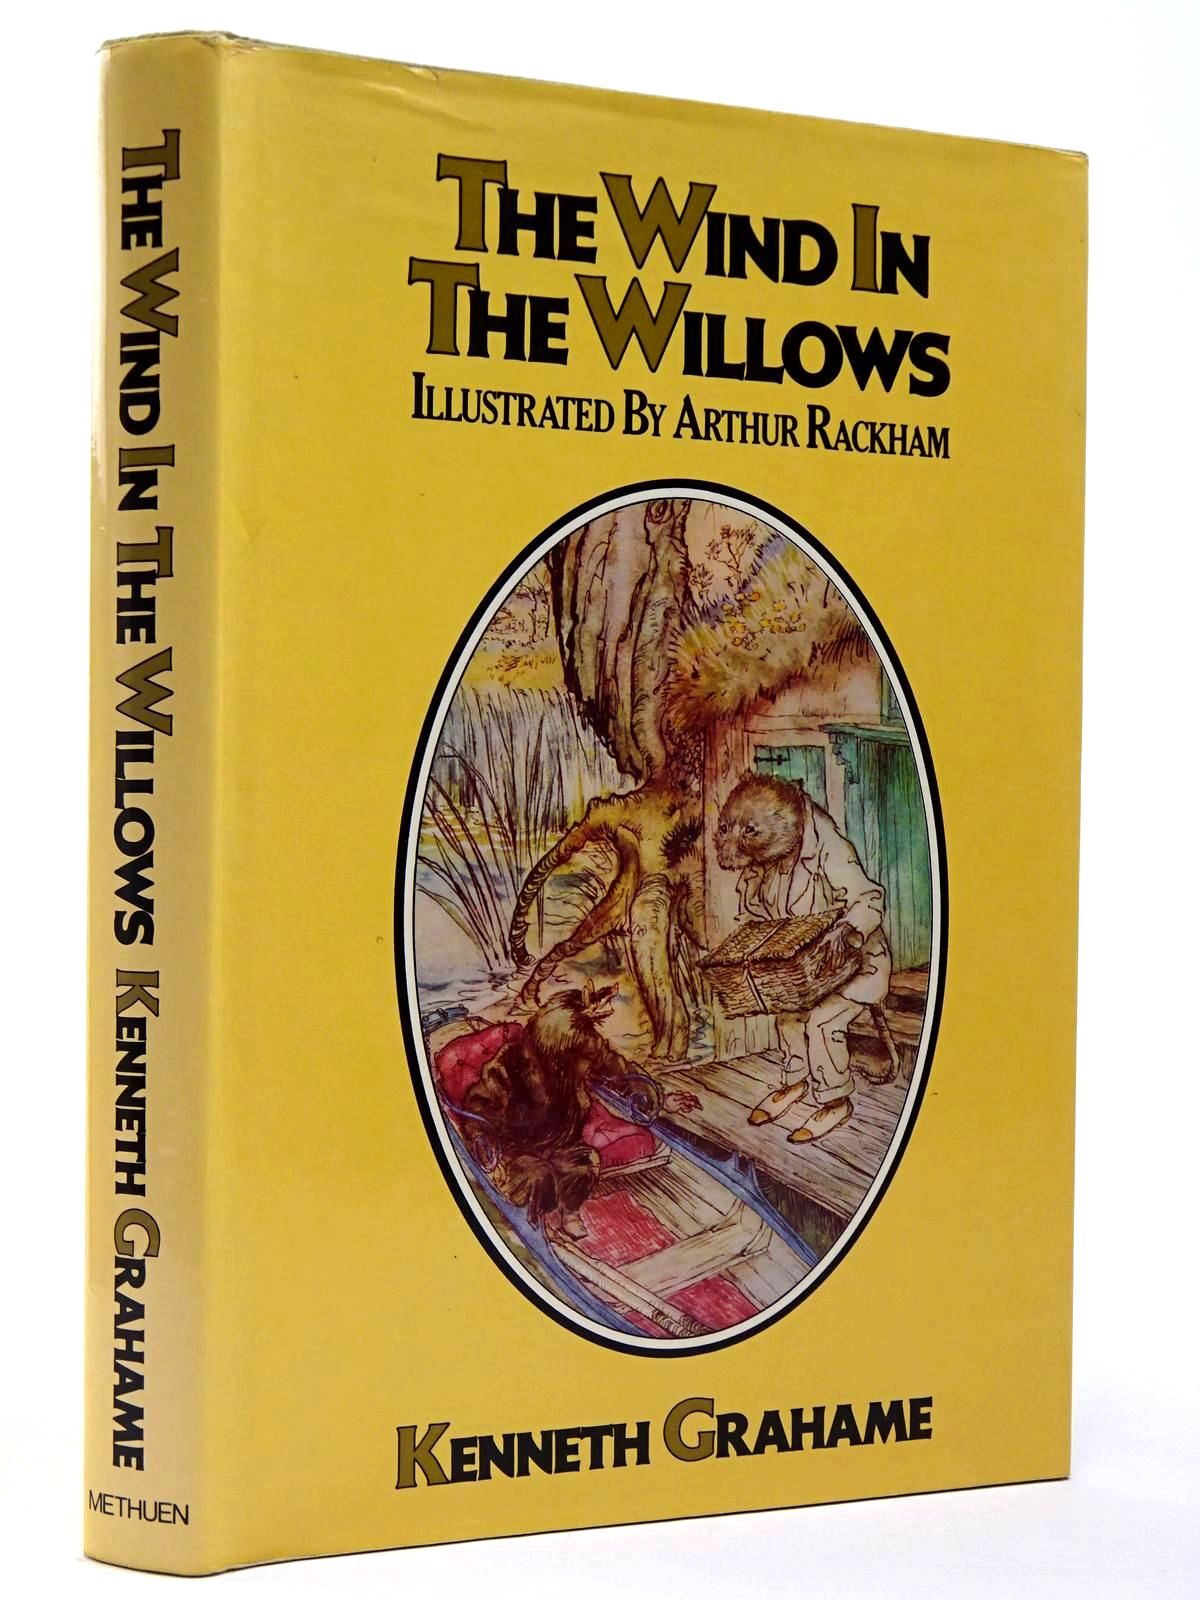 Photo of THE WIND IN THE WILLOWS written by Grahame, Kenneth illustrated by Rackham, Arthur published by Methuen Children's Books (STOCK CODE: 2129860)  for sale by Stella & Rose's Books